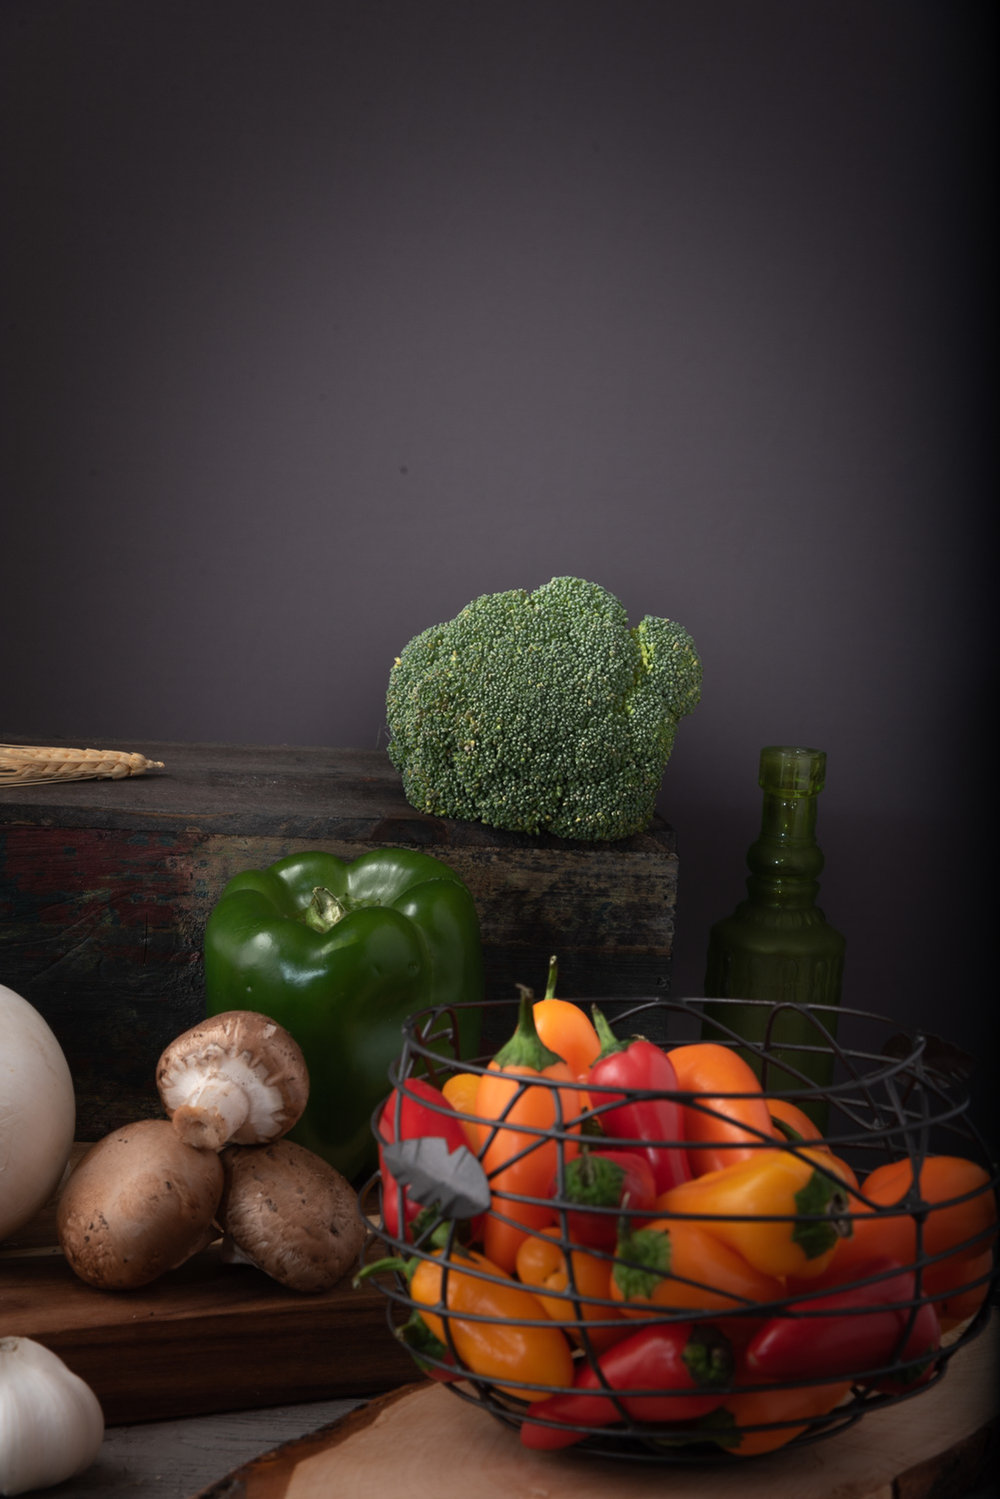 Cosentino Commercial Photography- Vegetables table top session